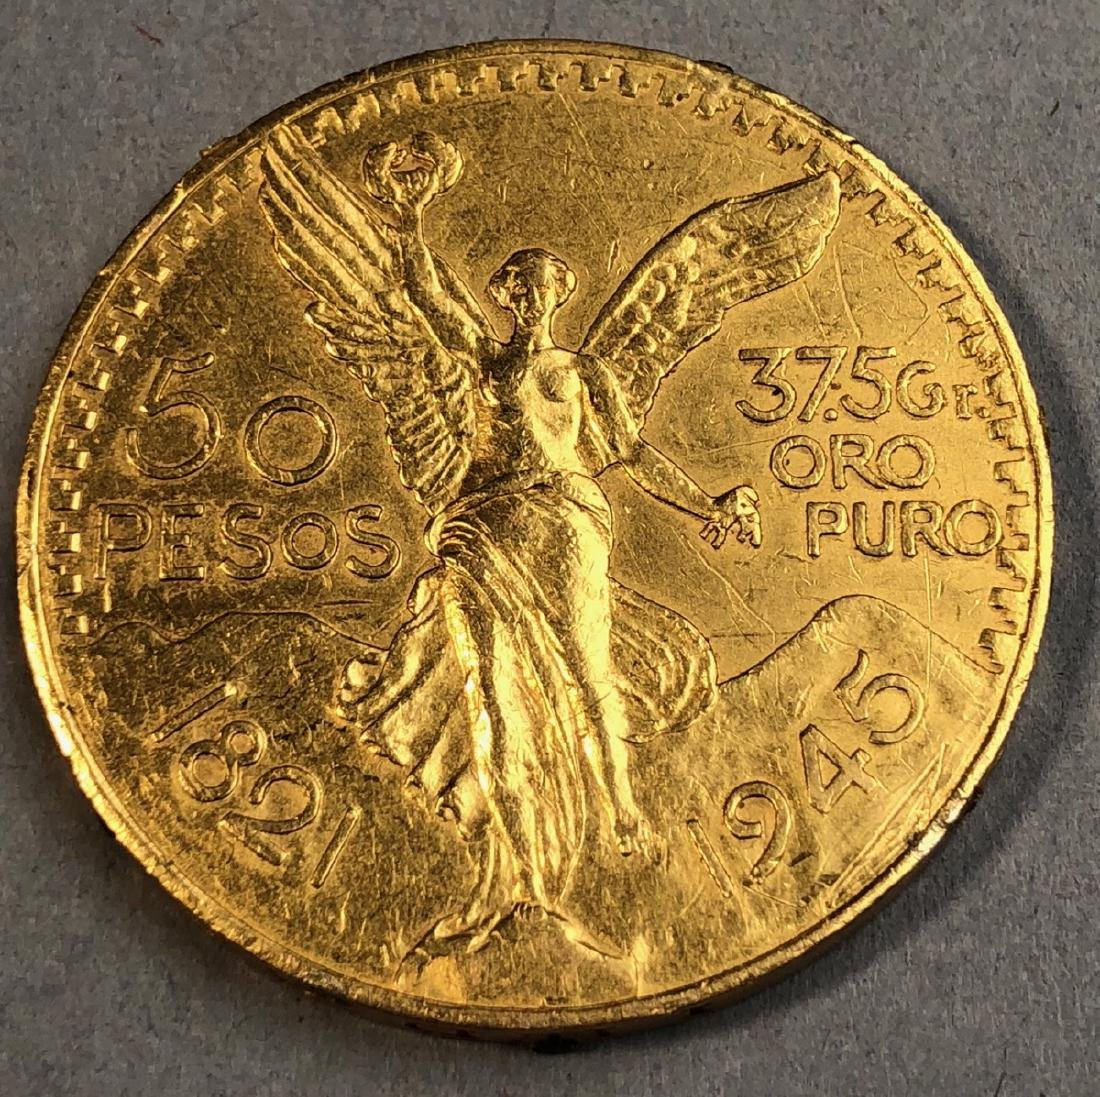 1945 Mexico 50 Pesos Gold Coin.